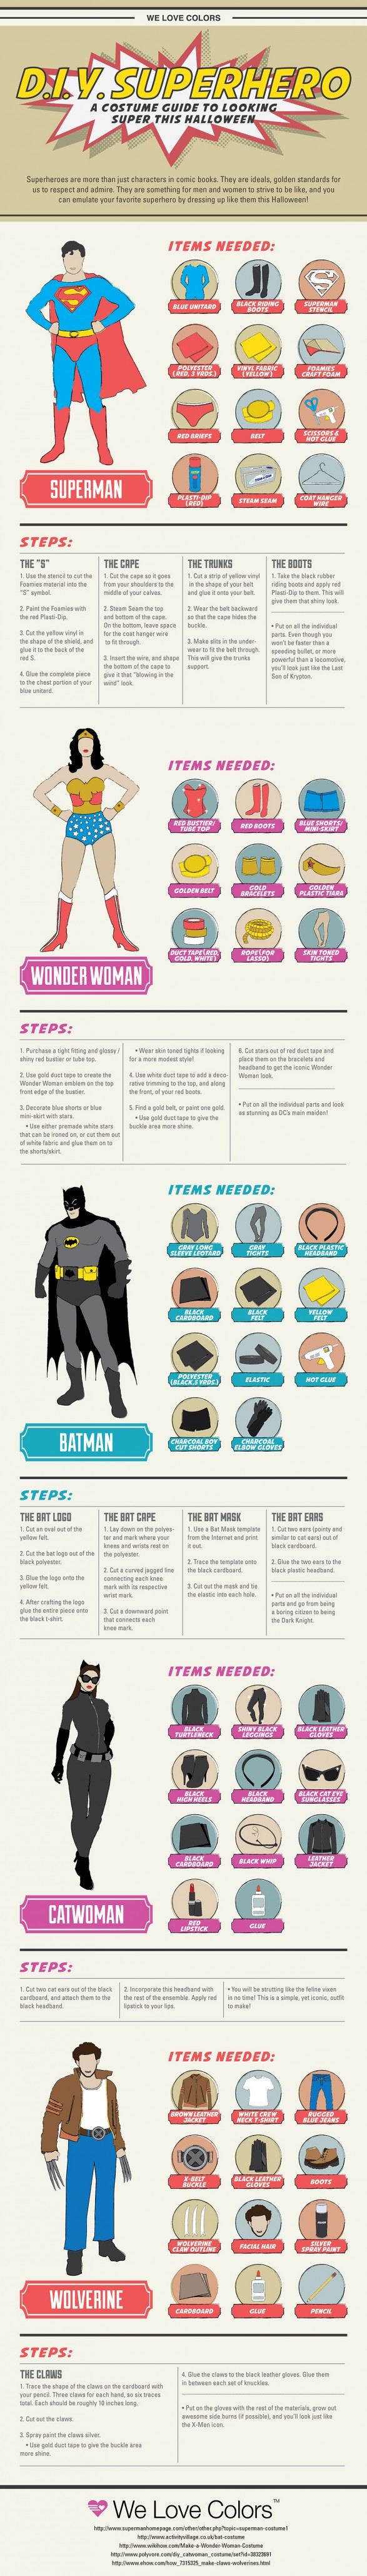 Do it yourself superhero costumes curious thoughts pinterest do it yourself superhero costumes solutioingenieria Image collections